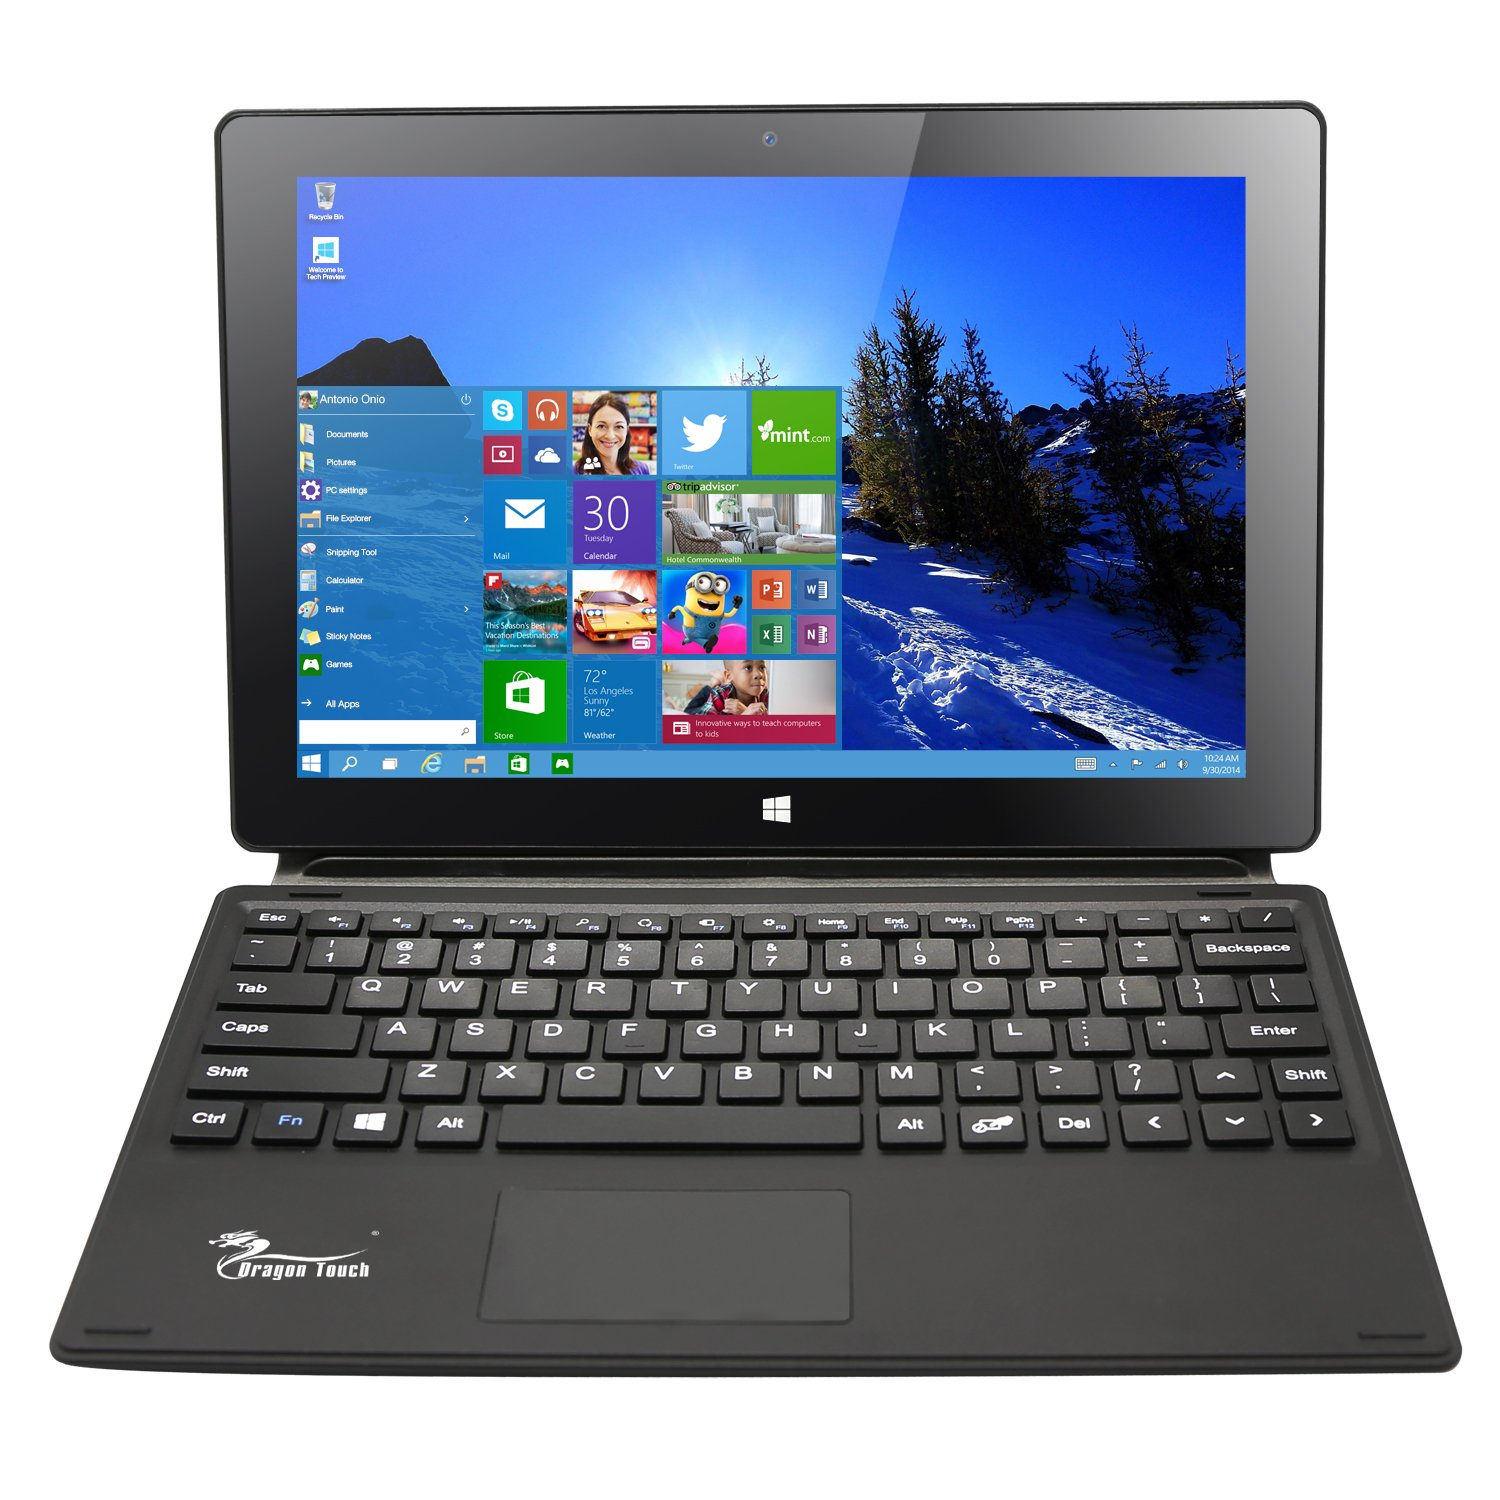 Dragon Touch i10X 10.1 inch 64 GB Windows 10 Tablet Intel Quad Core 2-in-1 Notebook IPS Screen with Detachable Keyboard